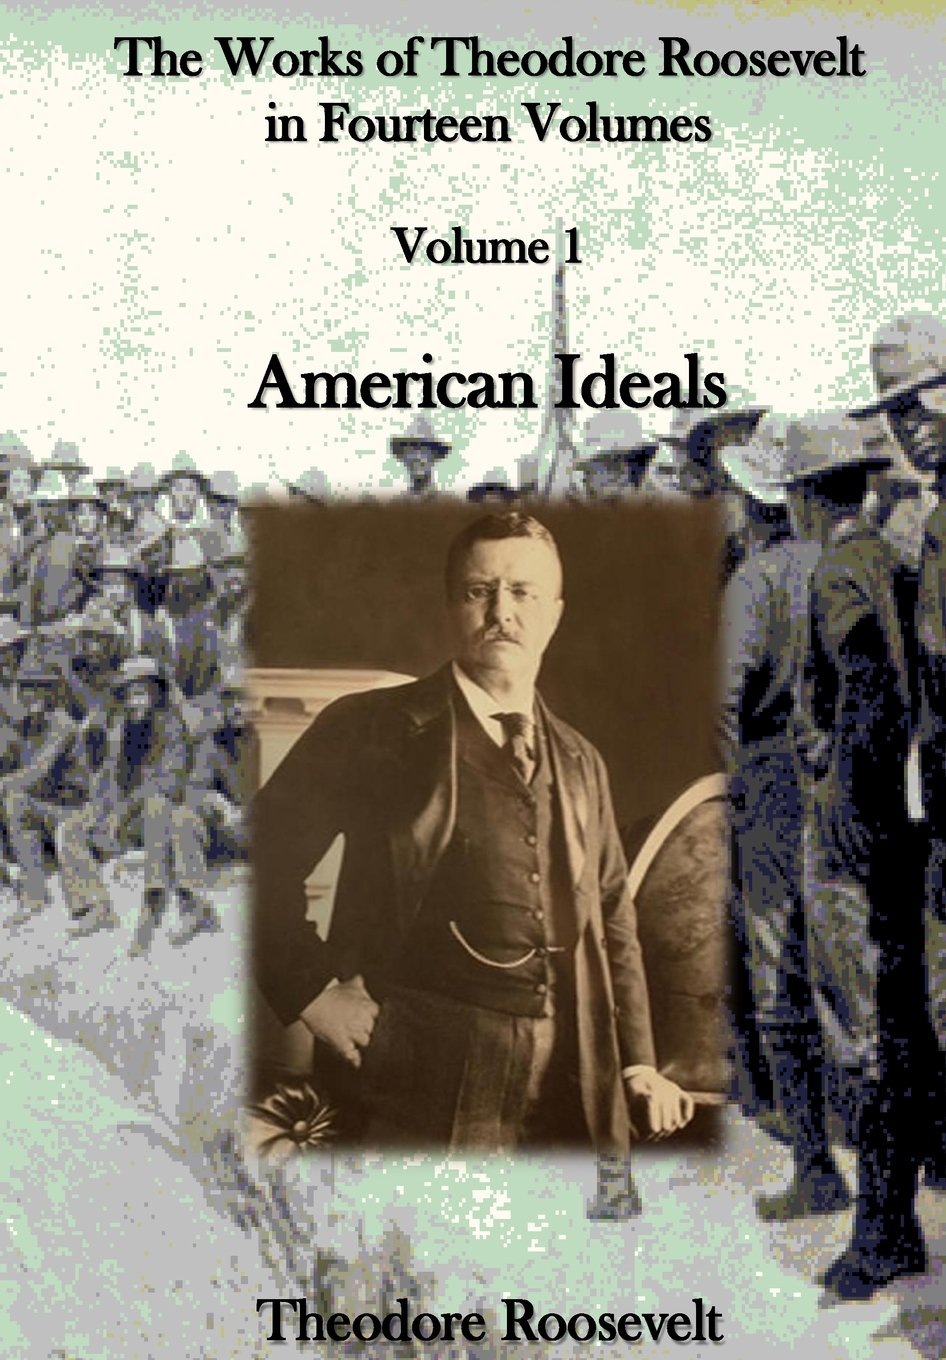 The Works of Theodore Roosevelt in Fourteen Volumes: American Ideals (Volume 1) pdf epub